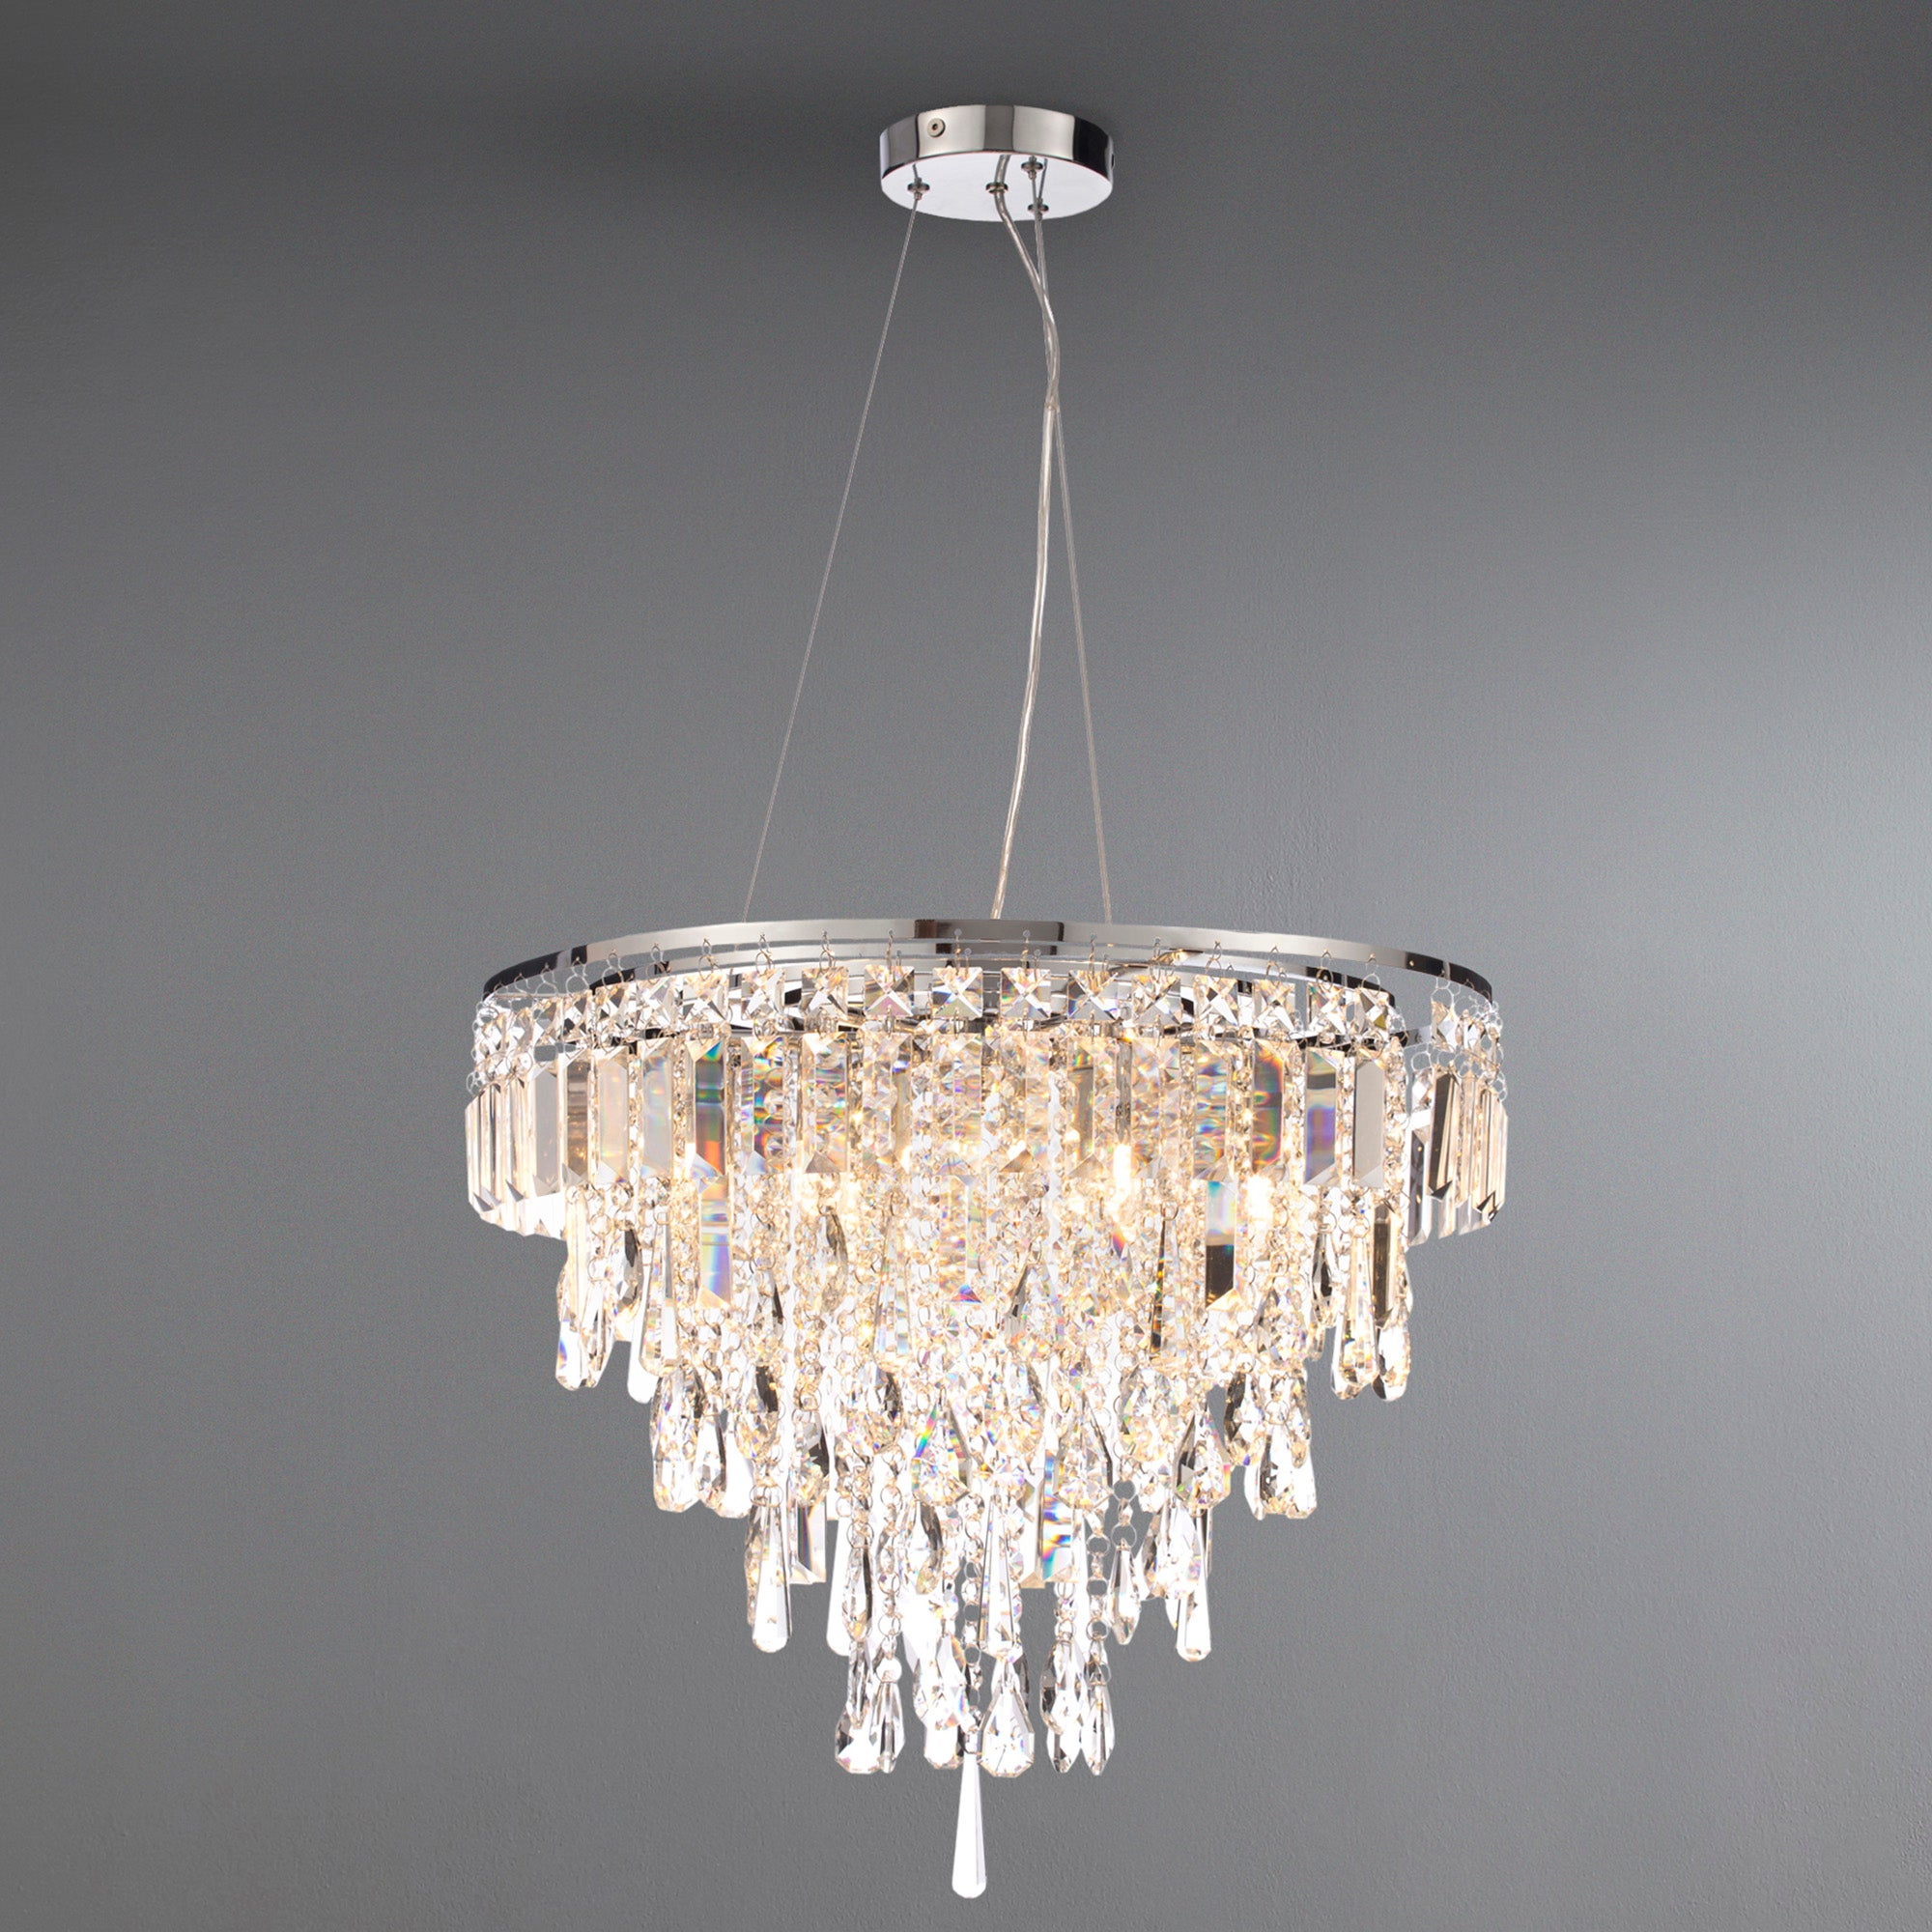 Image of Marquis by Waterford Bresna Chrome 6 Light Pendant Chrome